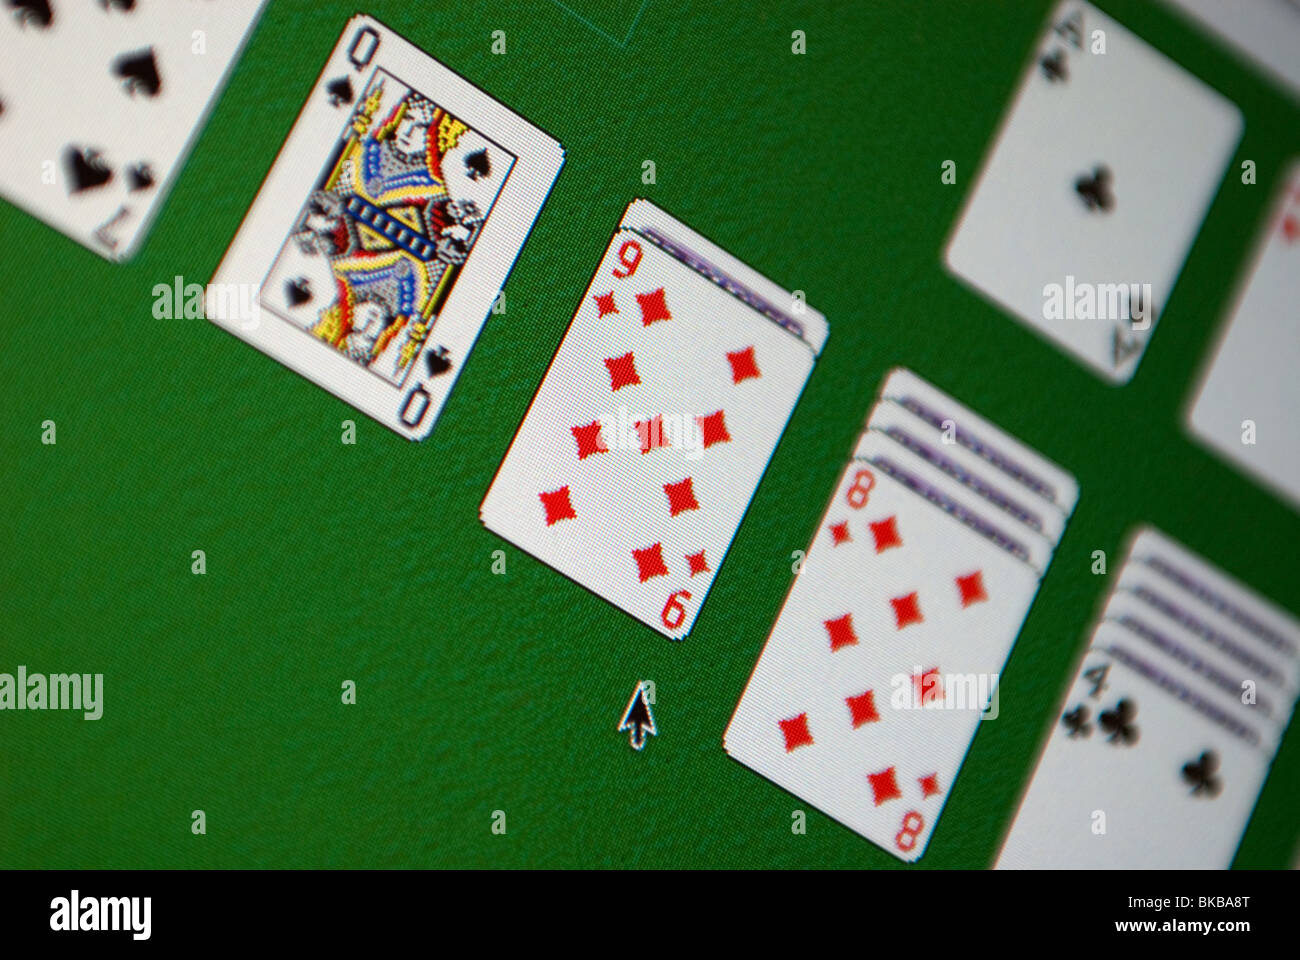 solitaire card game - Stock Image